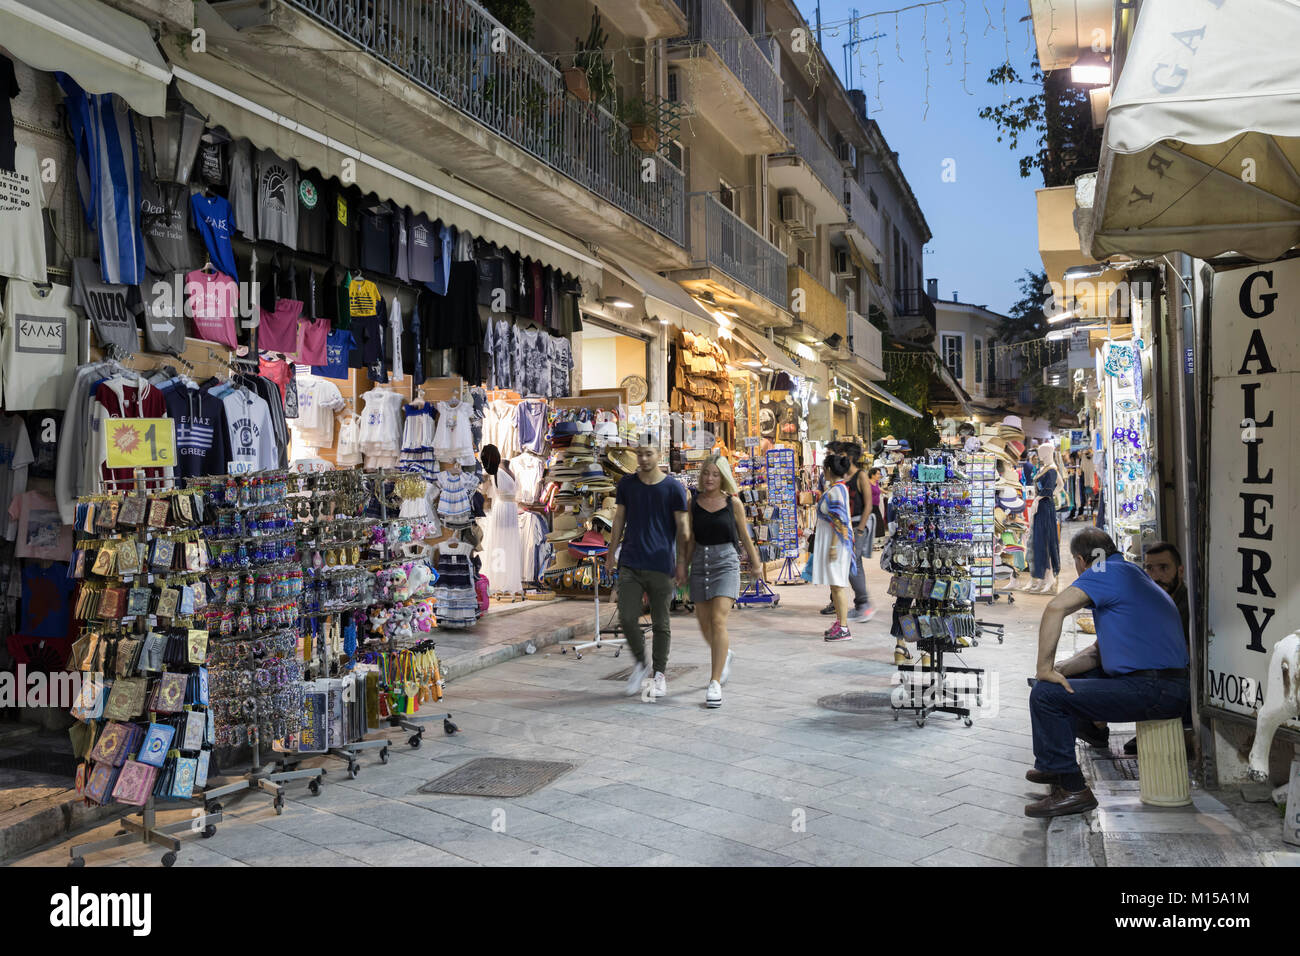 Tourist shops along Adrianou in the Plaka area in early evening, Athens, Greece, Europe - Stock Image